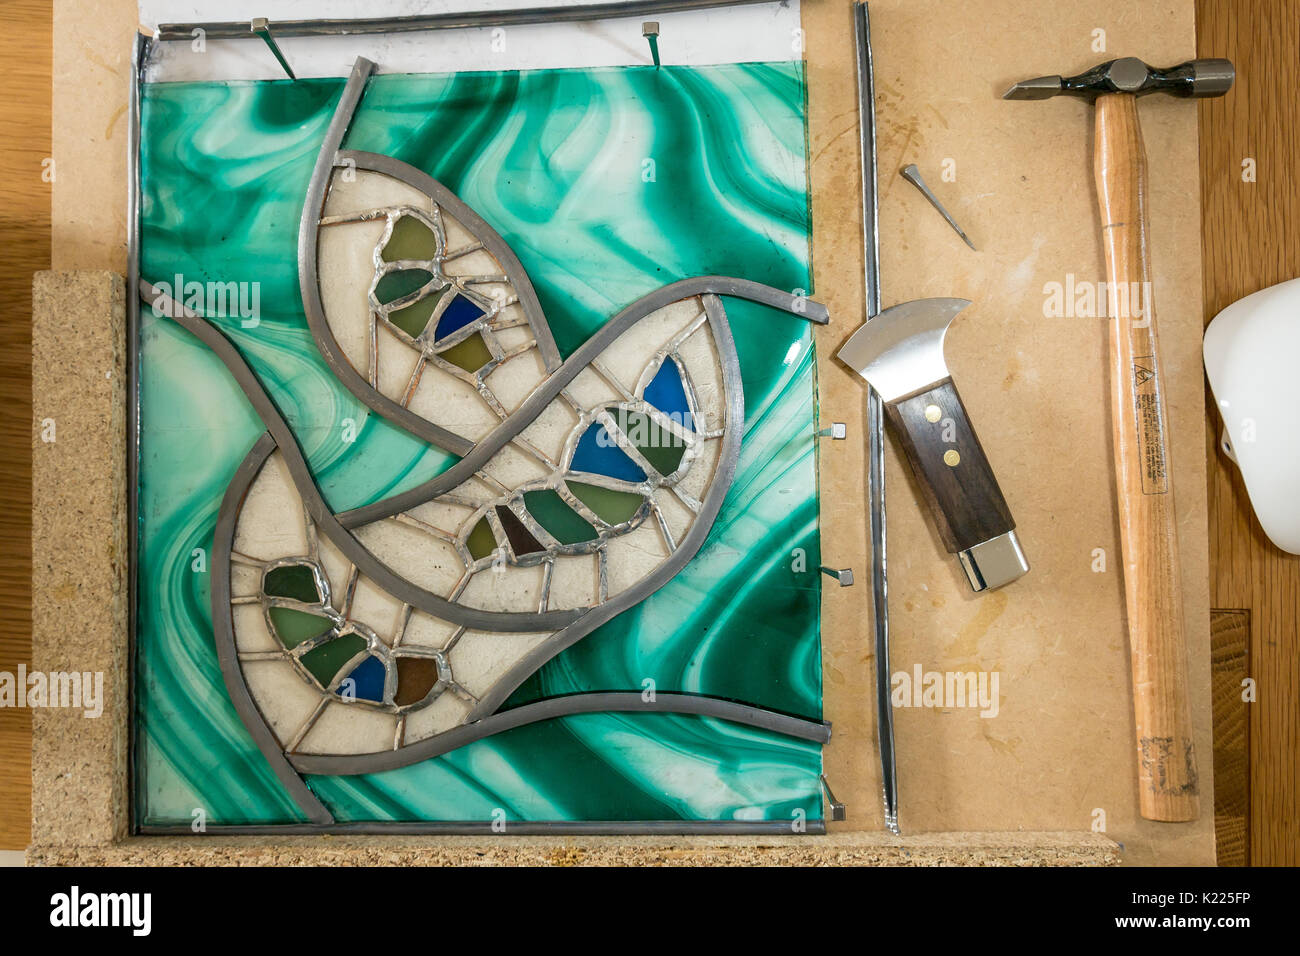 Work in progress making stained glass and sea glass art work using lead came. Work board with lead came, hammer, horseshoe nails and lead knife - Stock Image